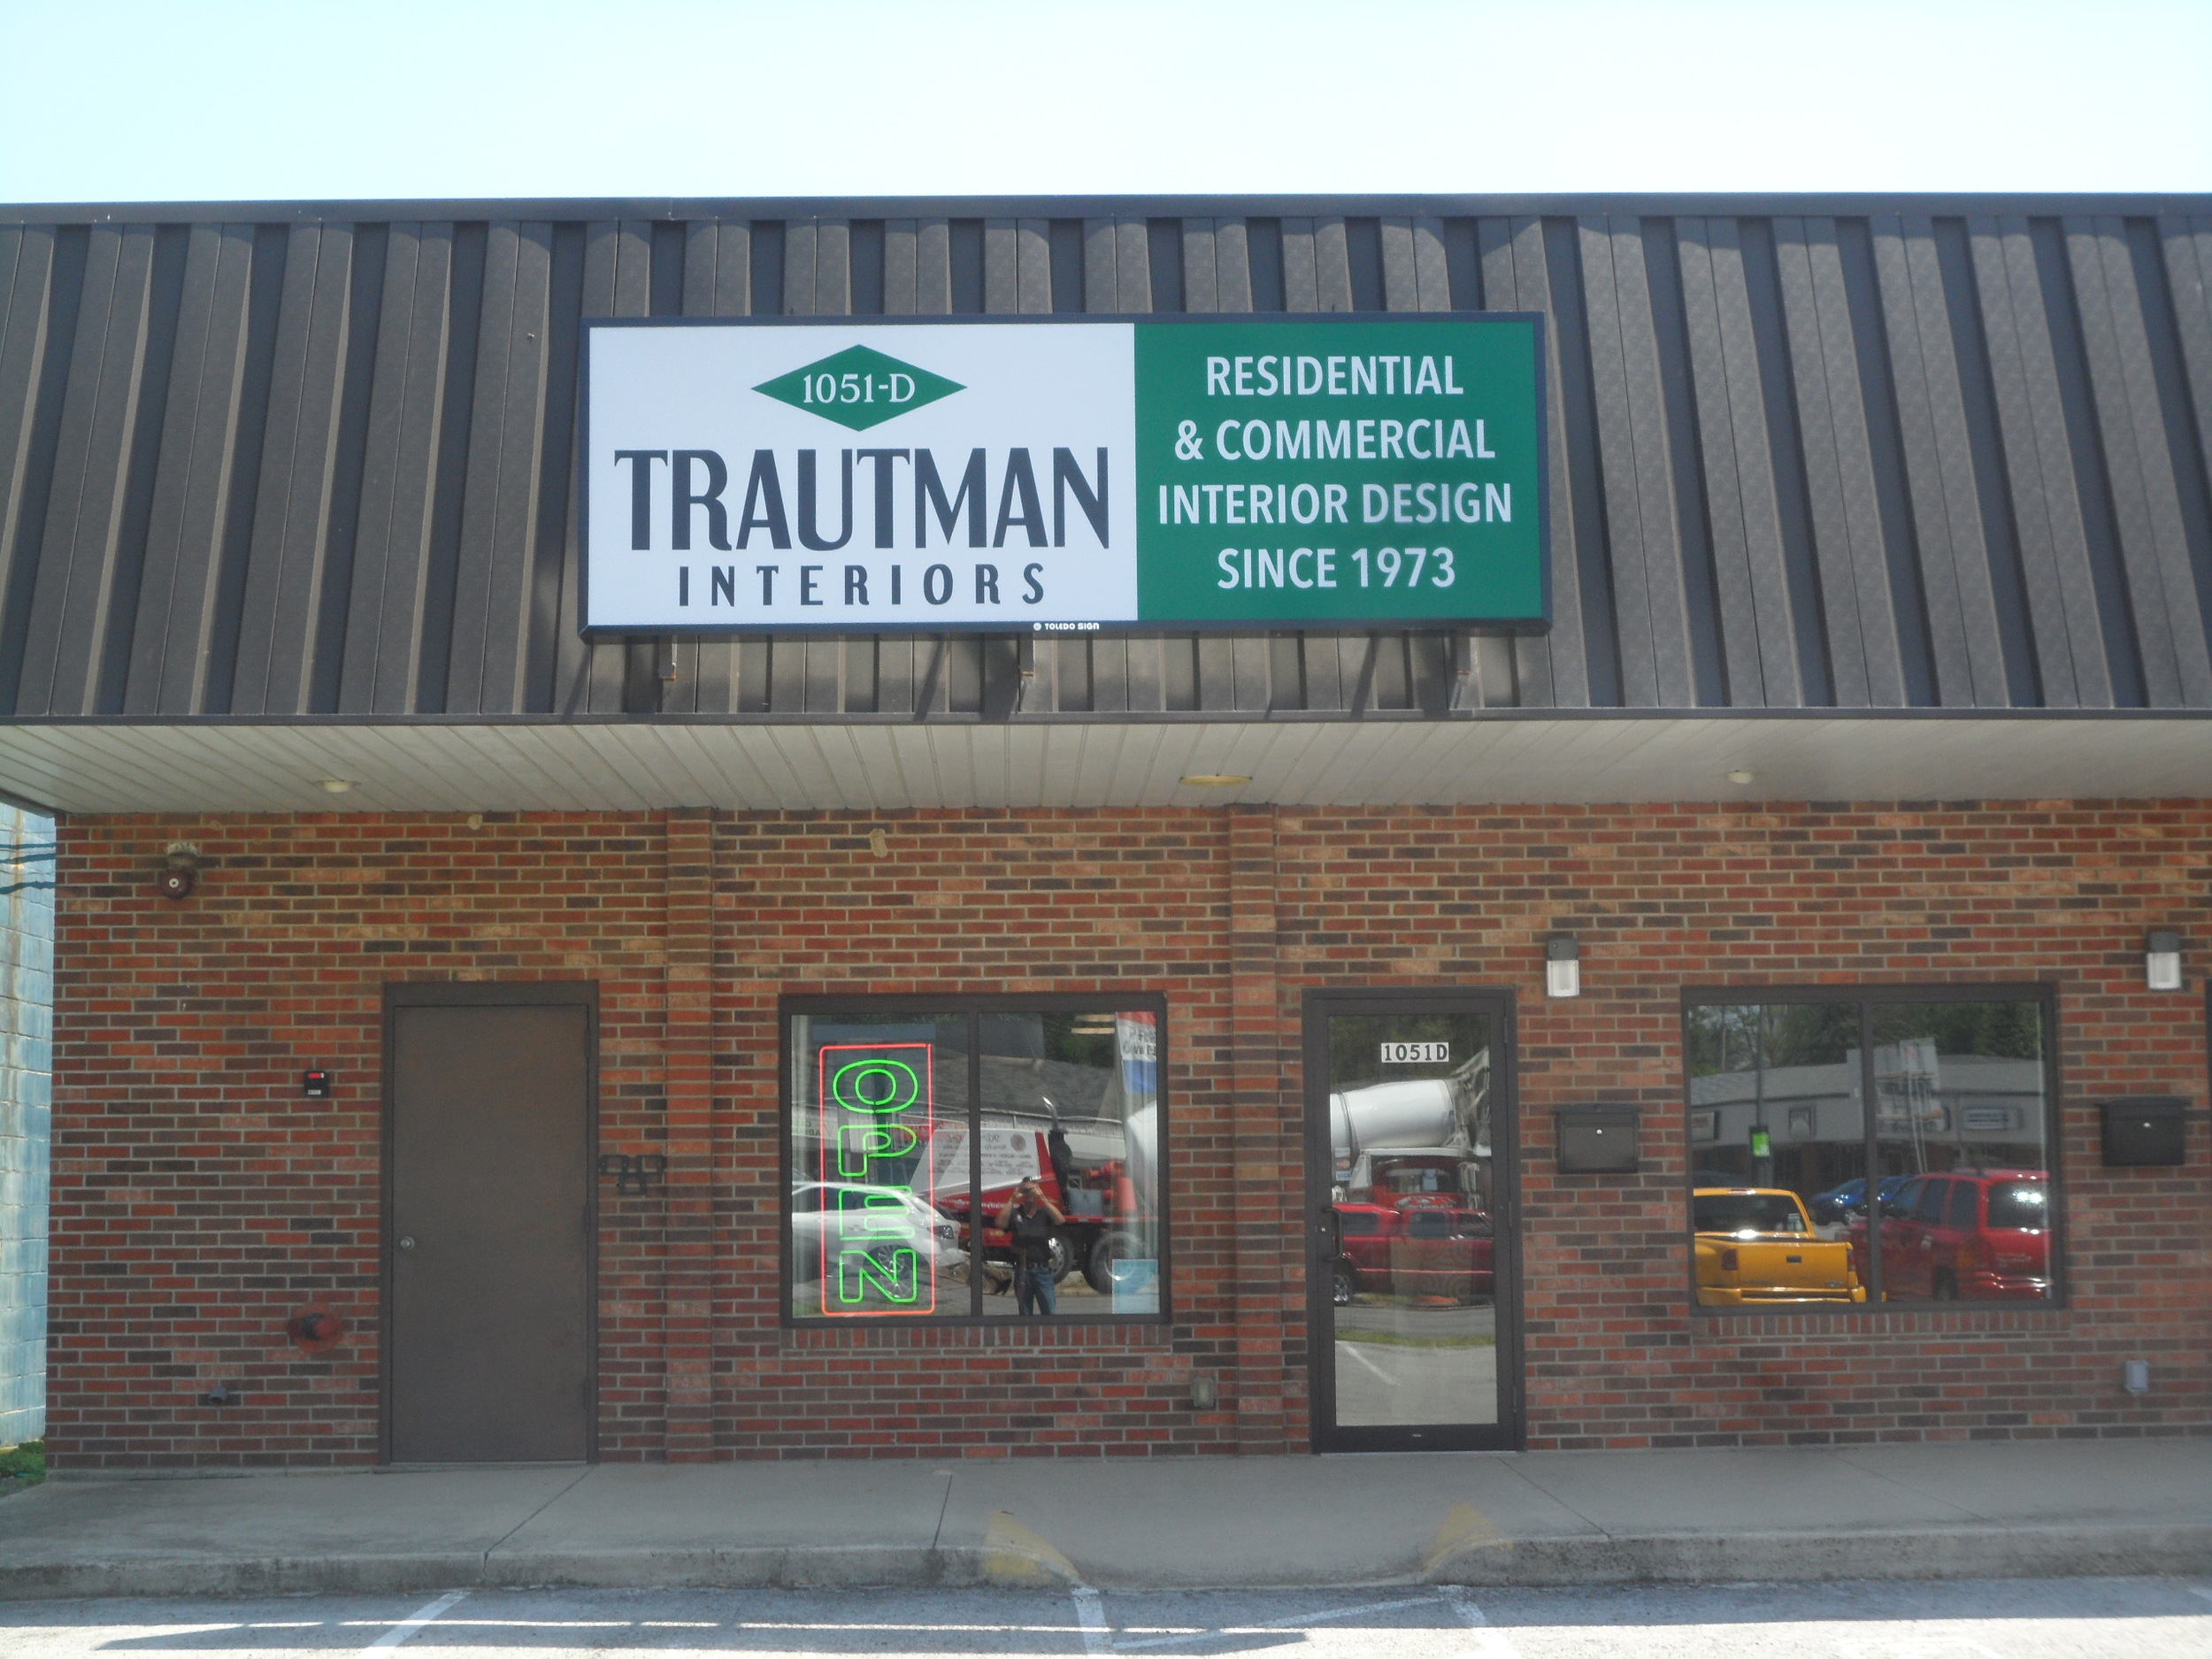 Trautman Interiors